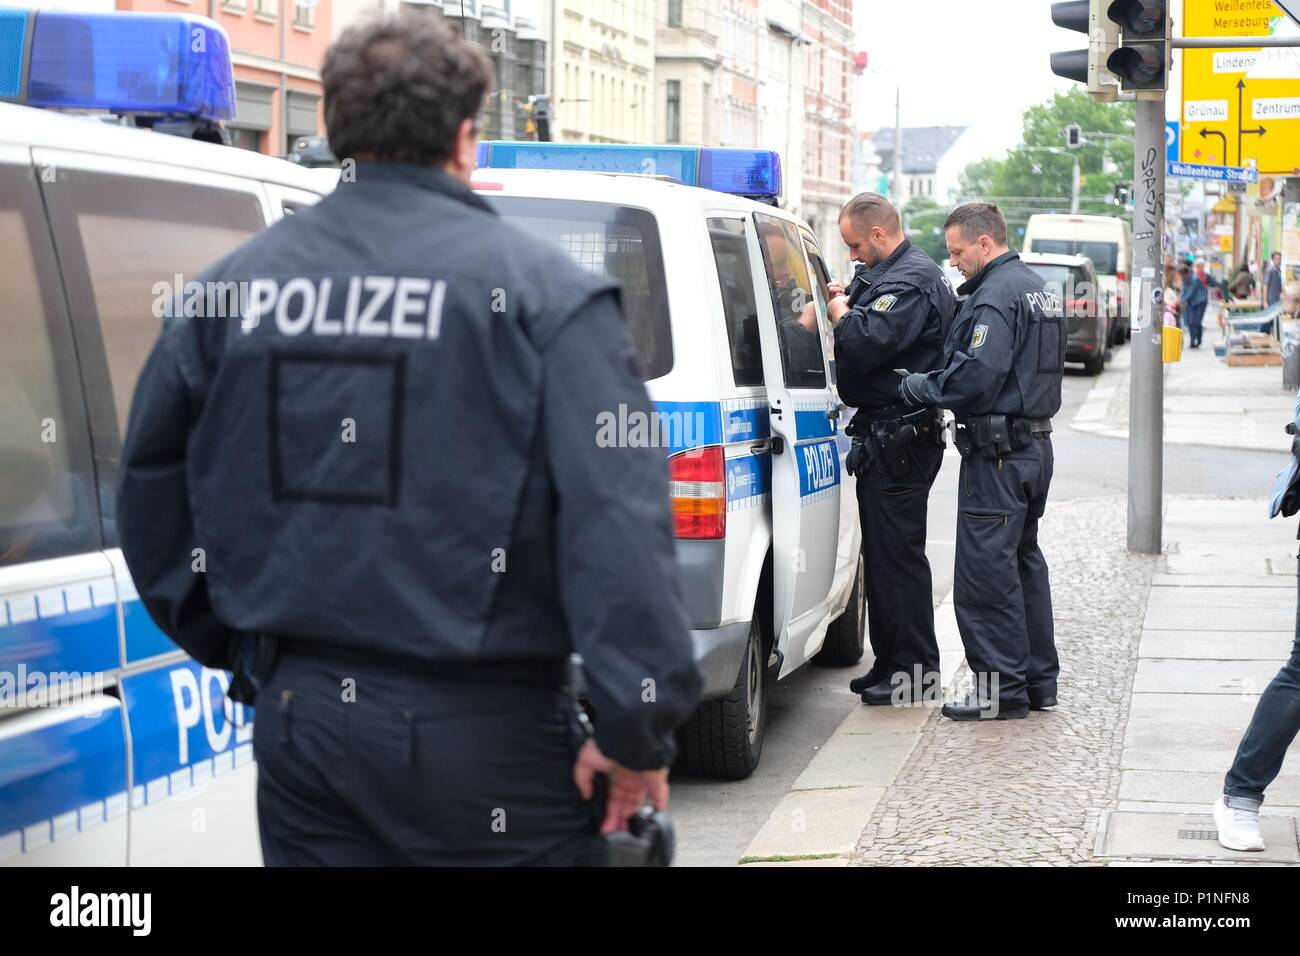 13 June 2018, Leipzig, Germany: Officers of the federal police accompany stand in front of a residential building in the city district Plagwitz. A police deployment took place due to sham marriage suspicions. Photo: Sebastian Willnow/dpa-Zentralbild/dpa - Stock Image